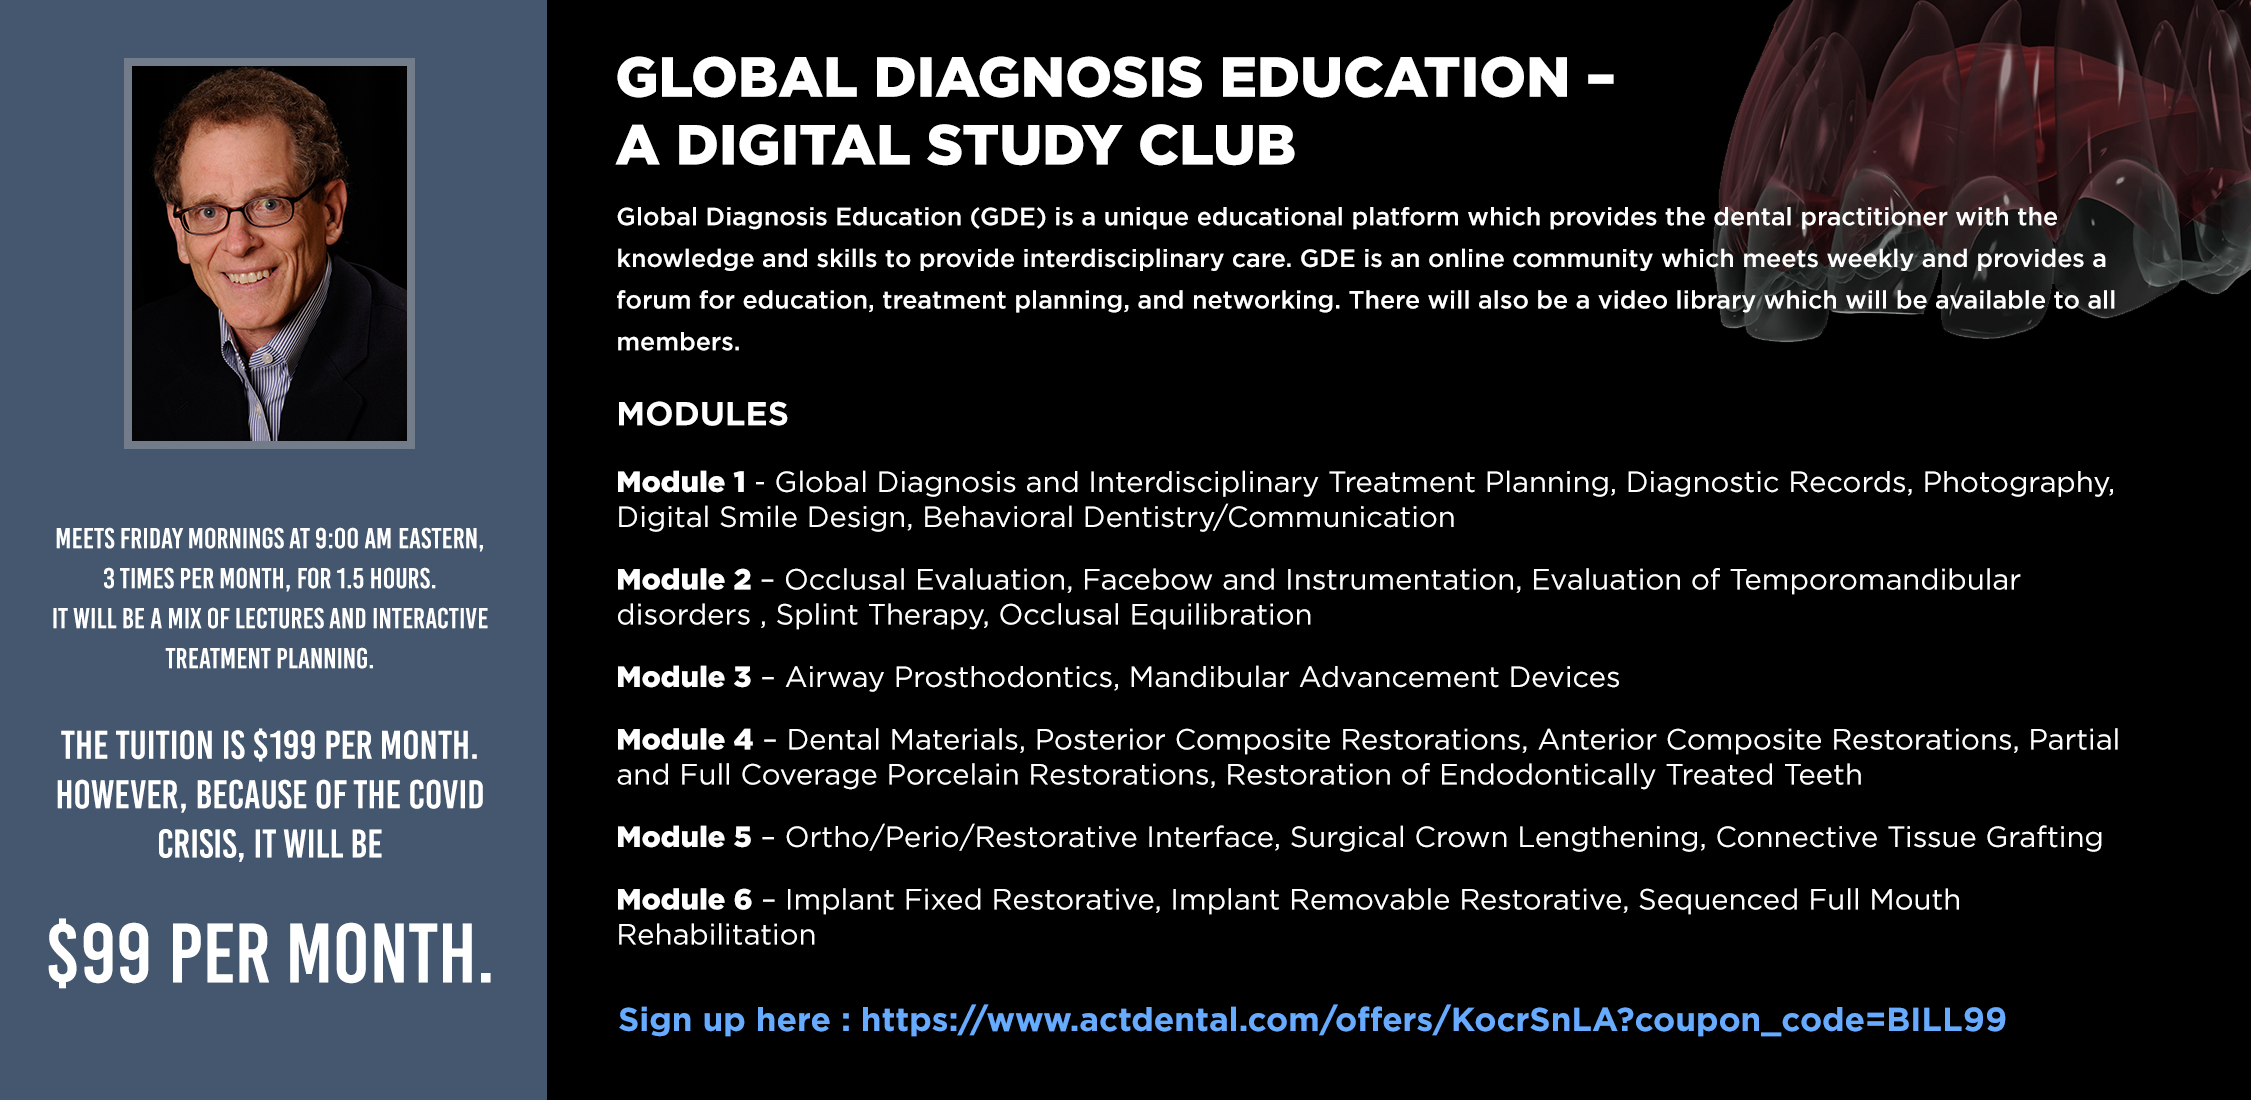 Global Diagnosis Education